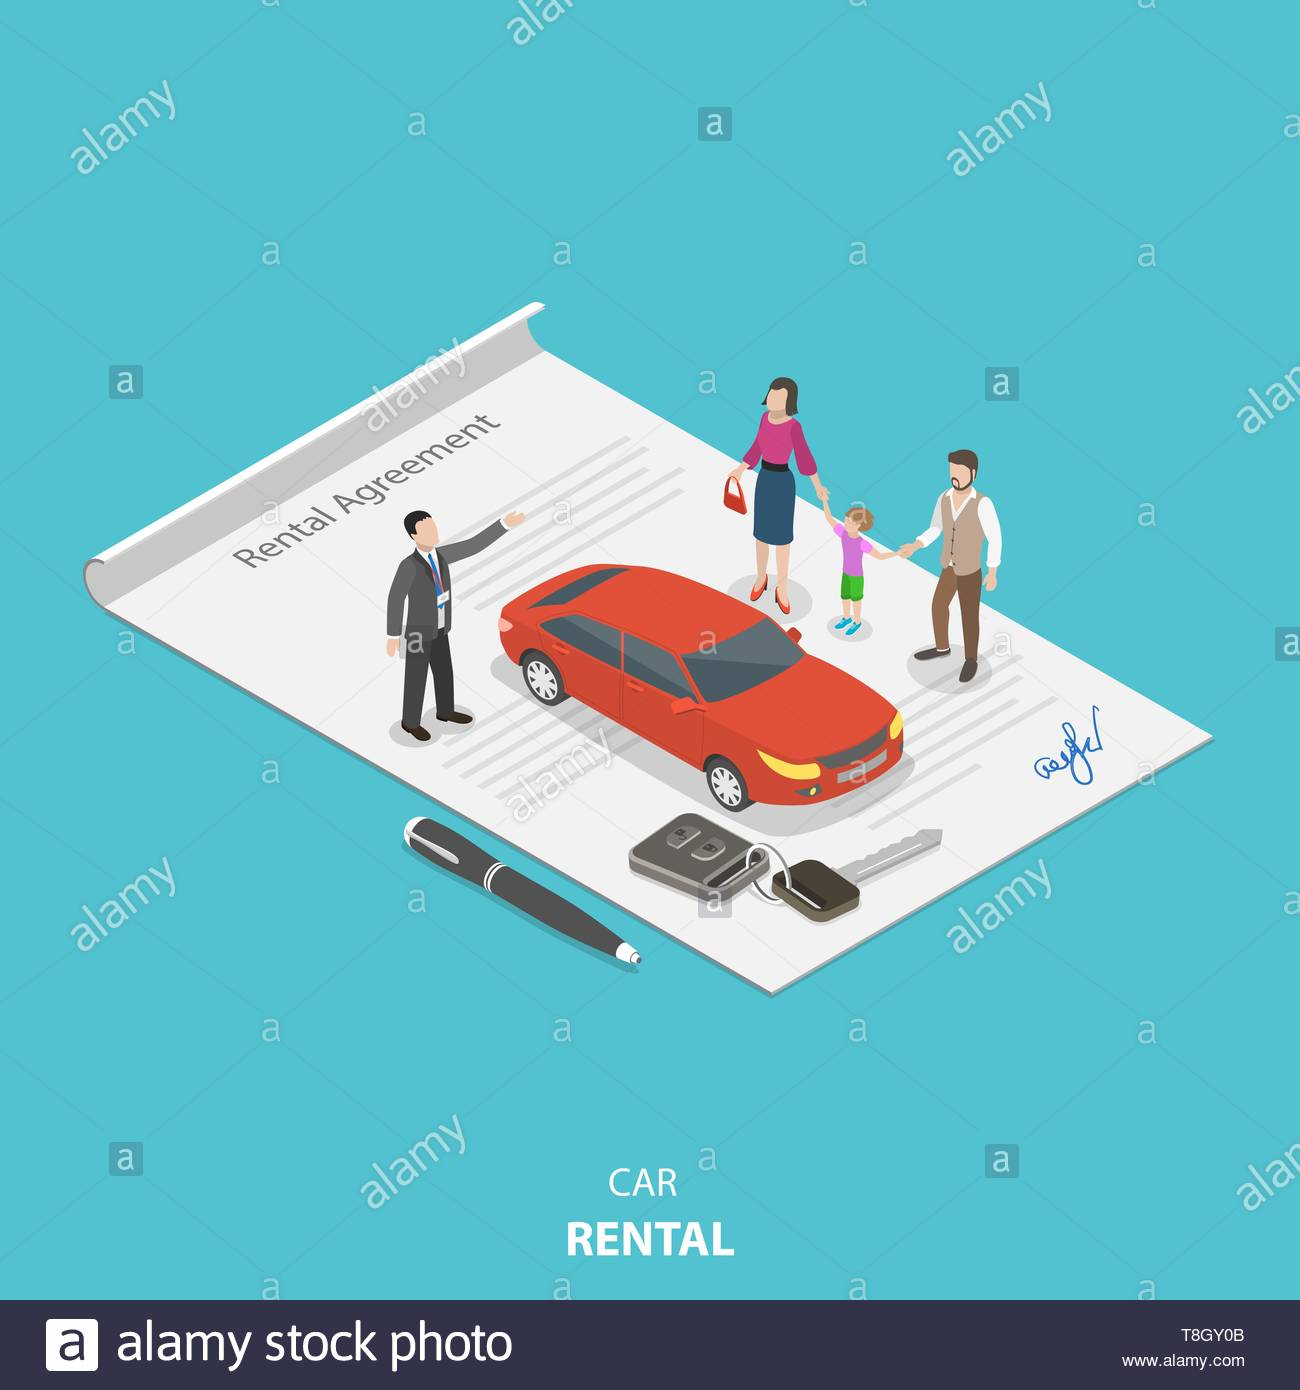 Vehicle rental flat isometric vector concept. Rental agent is describing the car rental condition to the young family standing on the rental agreement - Stock Vector